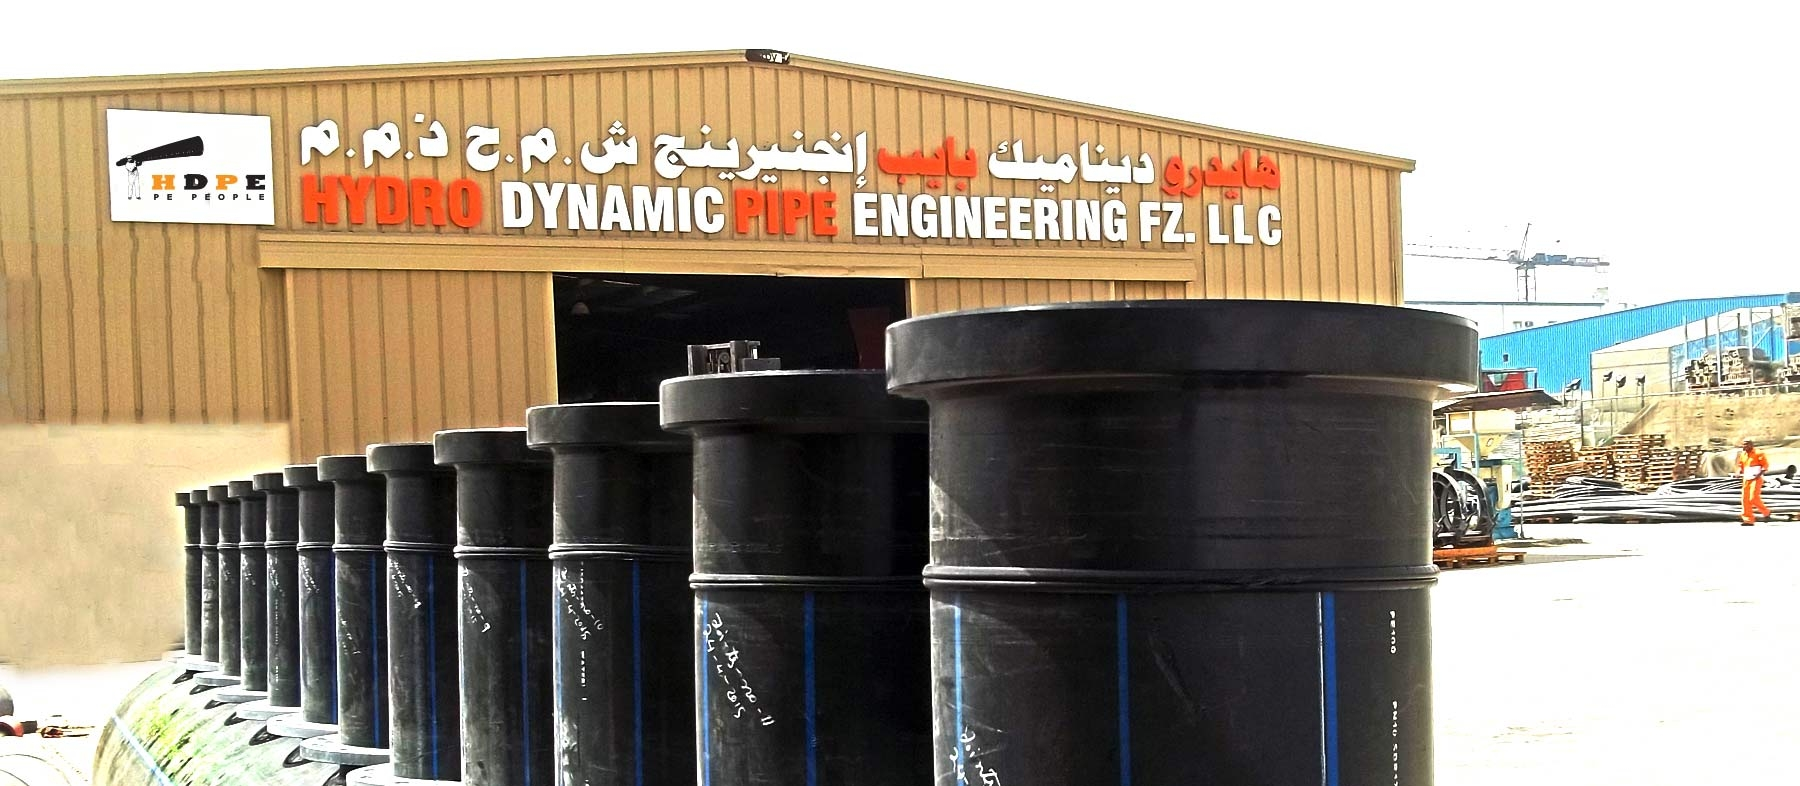 Hydro Dynamic Pipe Engineering Factory